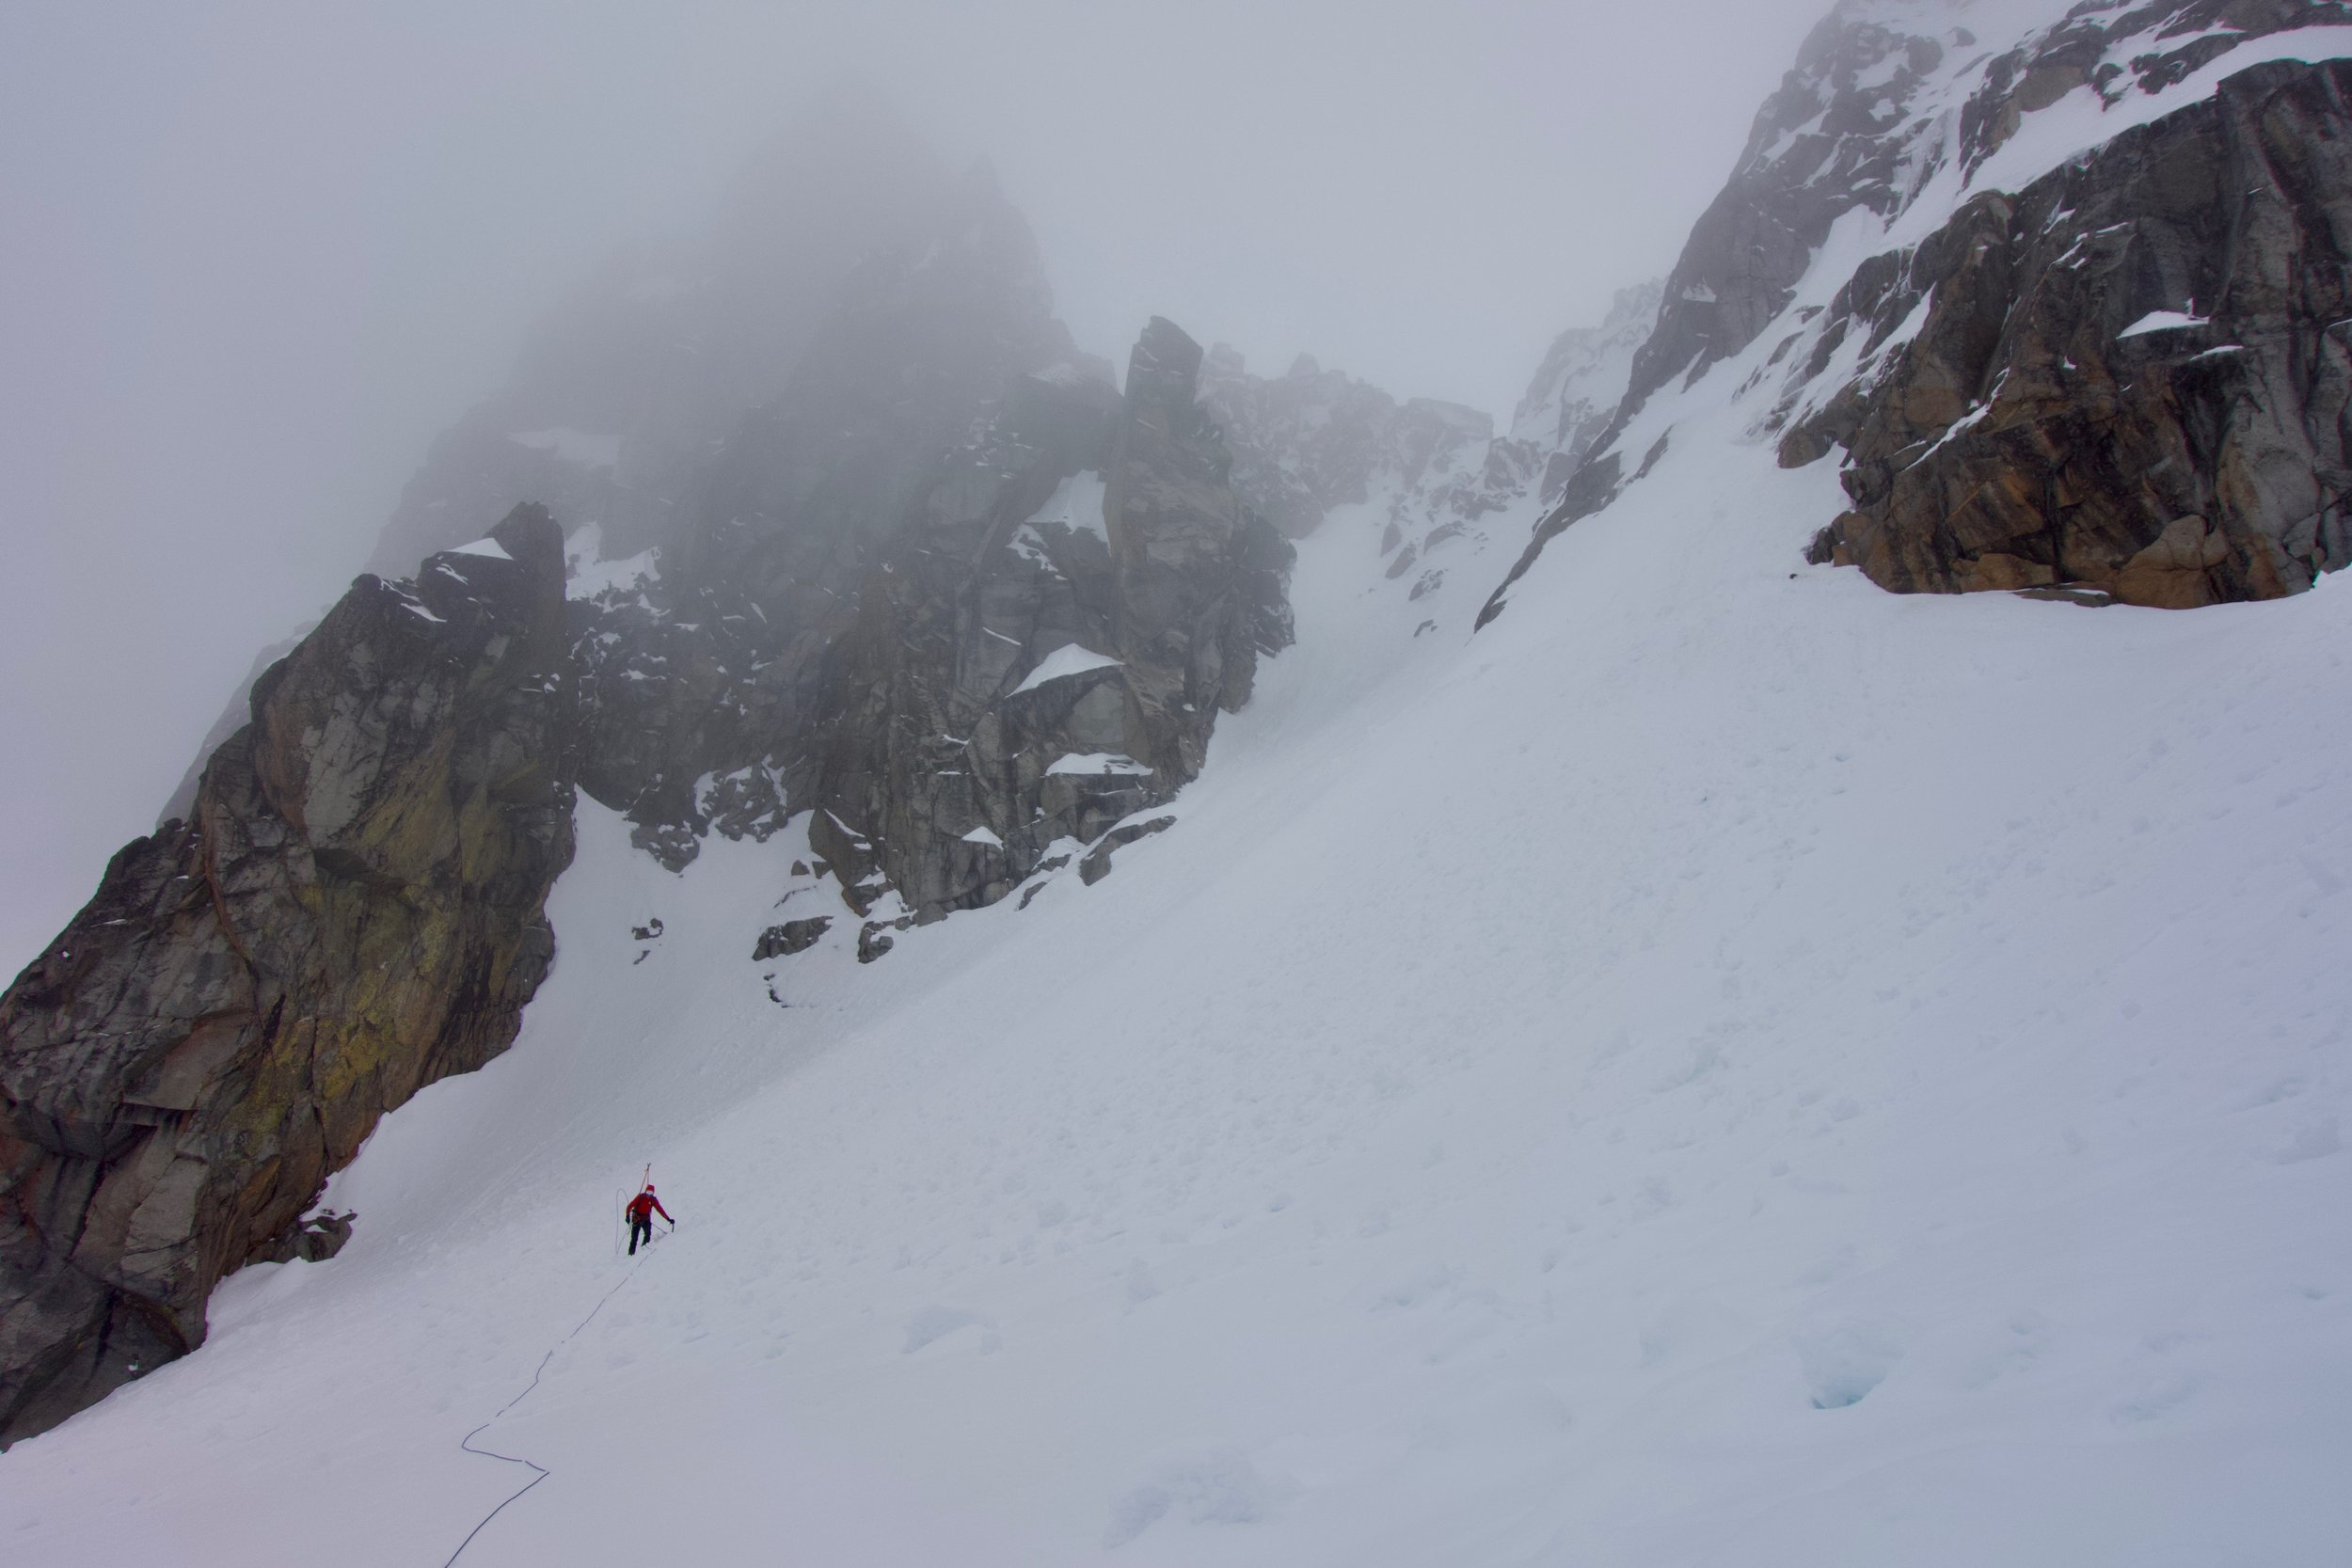 Descending and traversing to the route